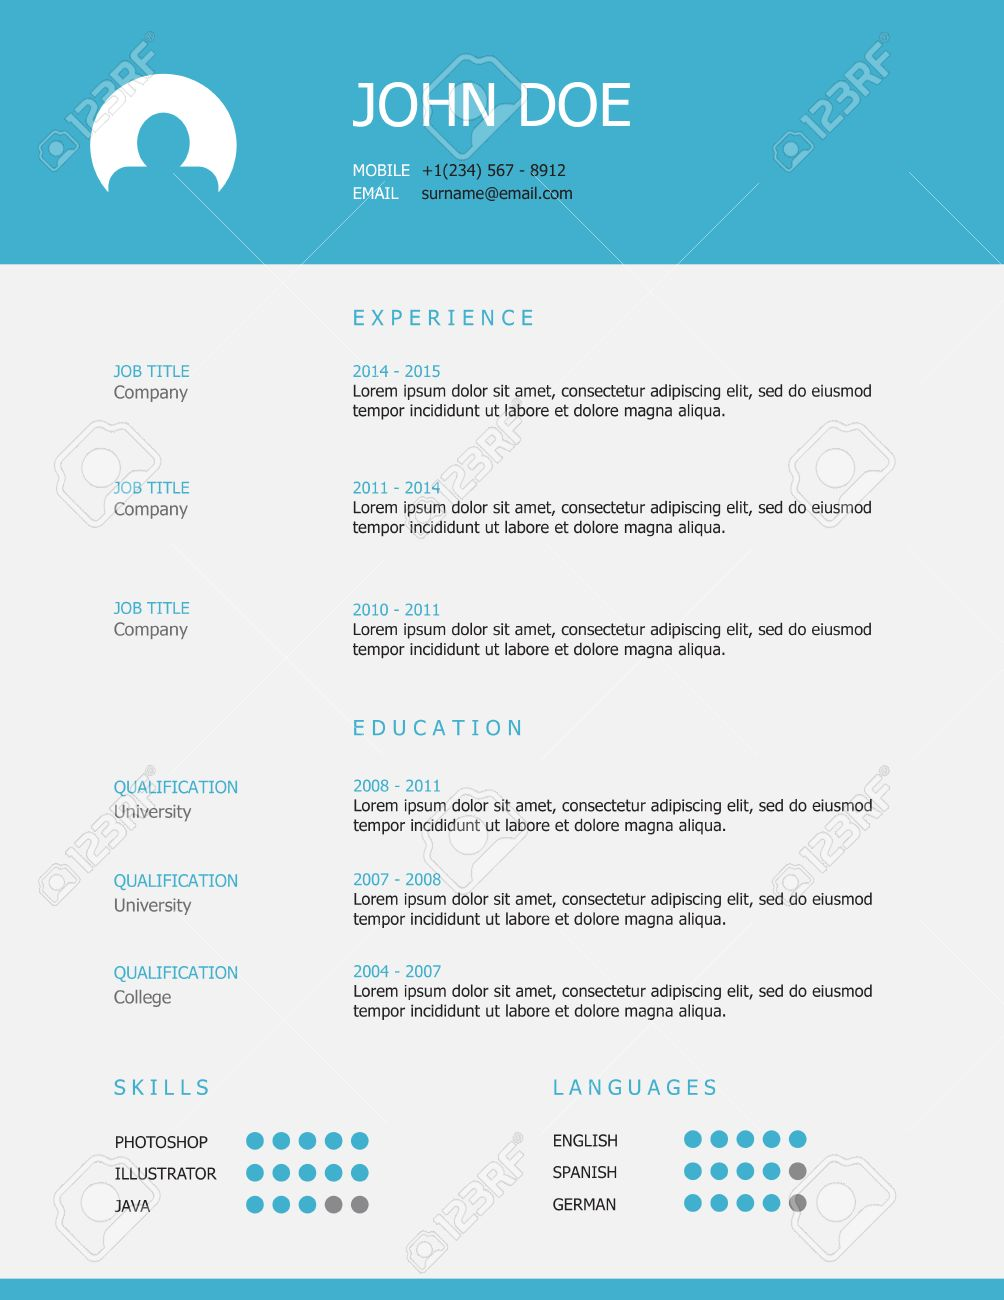 professional simple styled resume template design with blue header and gray background stock vector